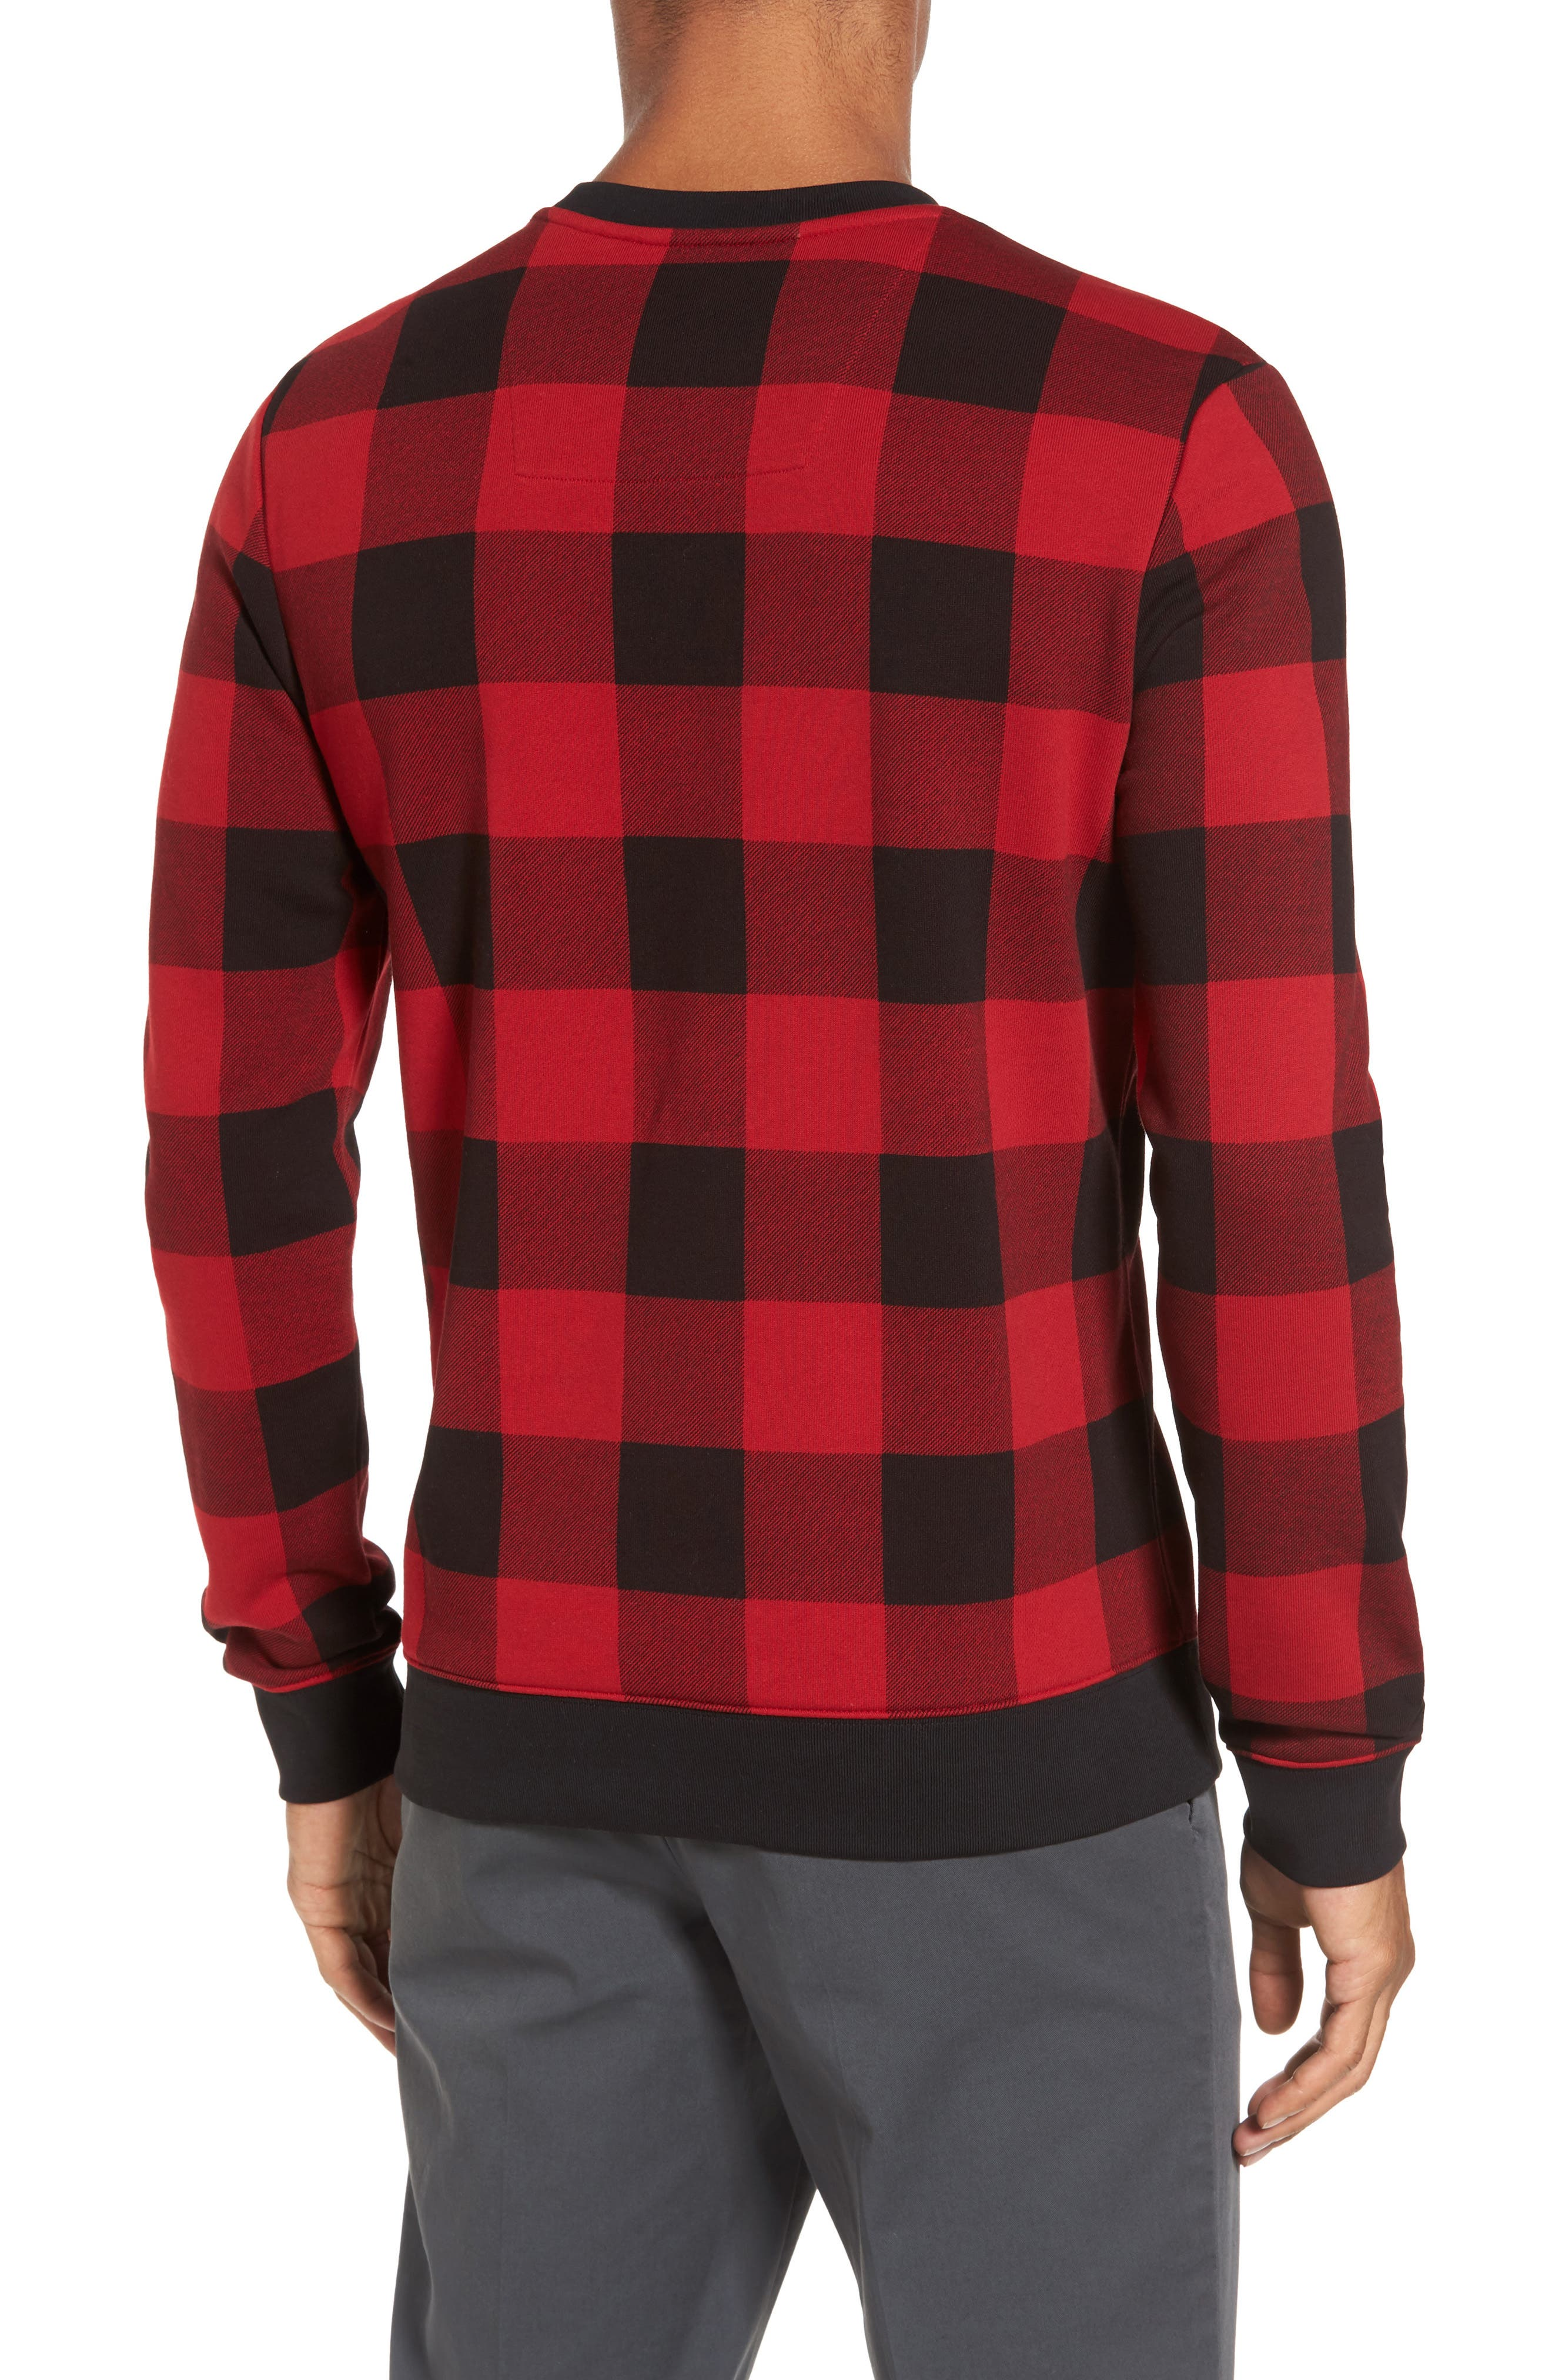 Skubic Check Slim Fit Sweater,                             Alternate thumbnail 2, color,                             Red